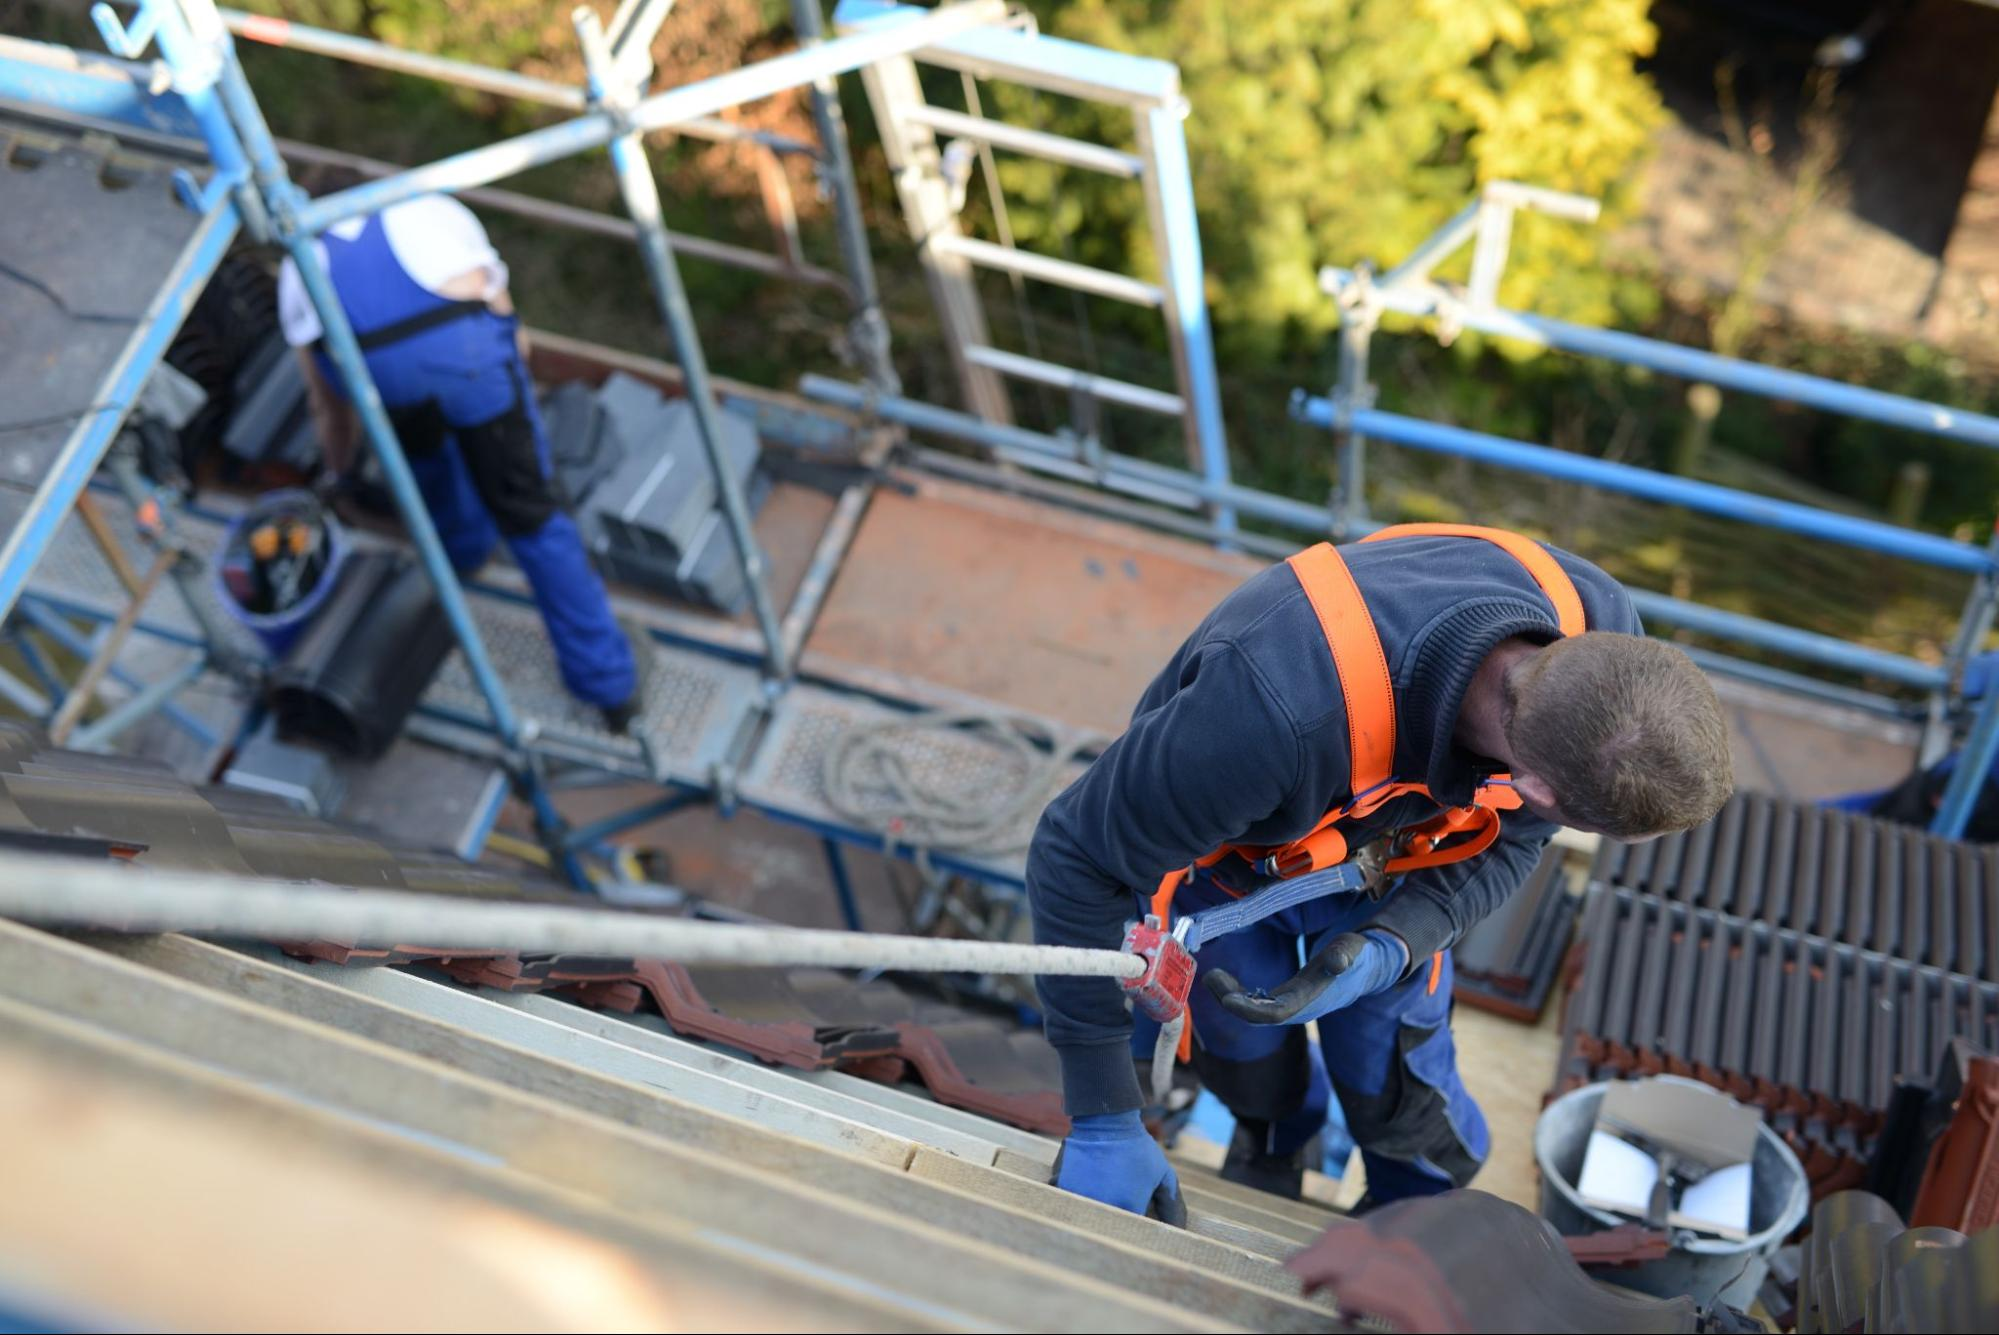 A roofing contractor on the roof with a safety harness